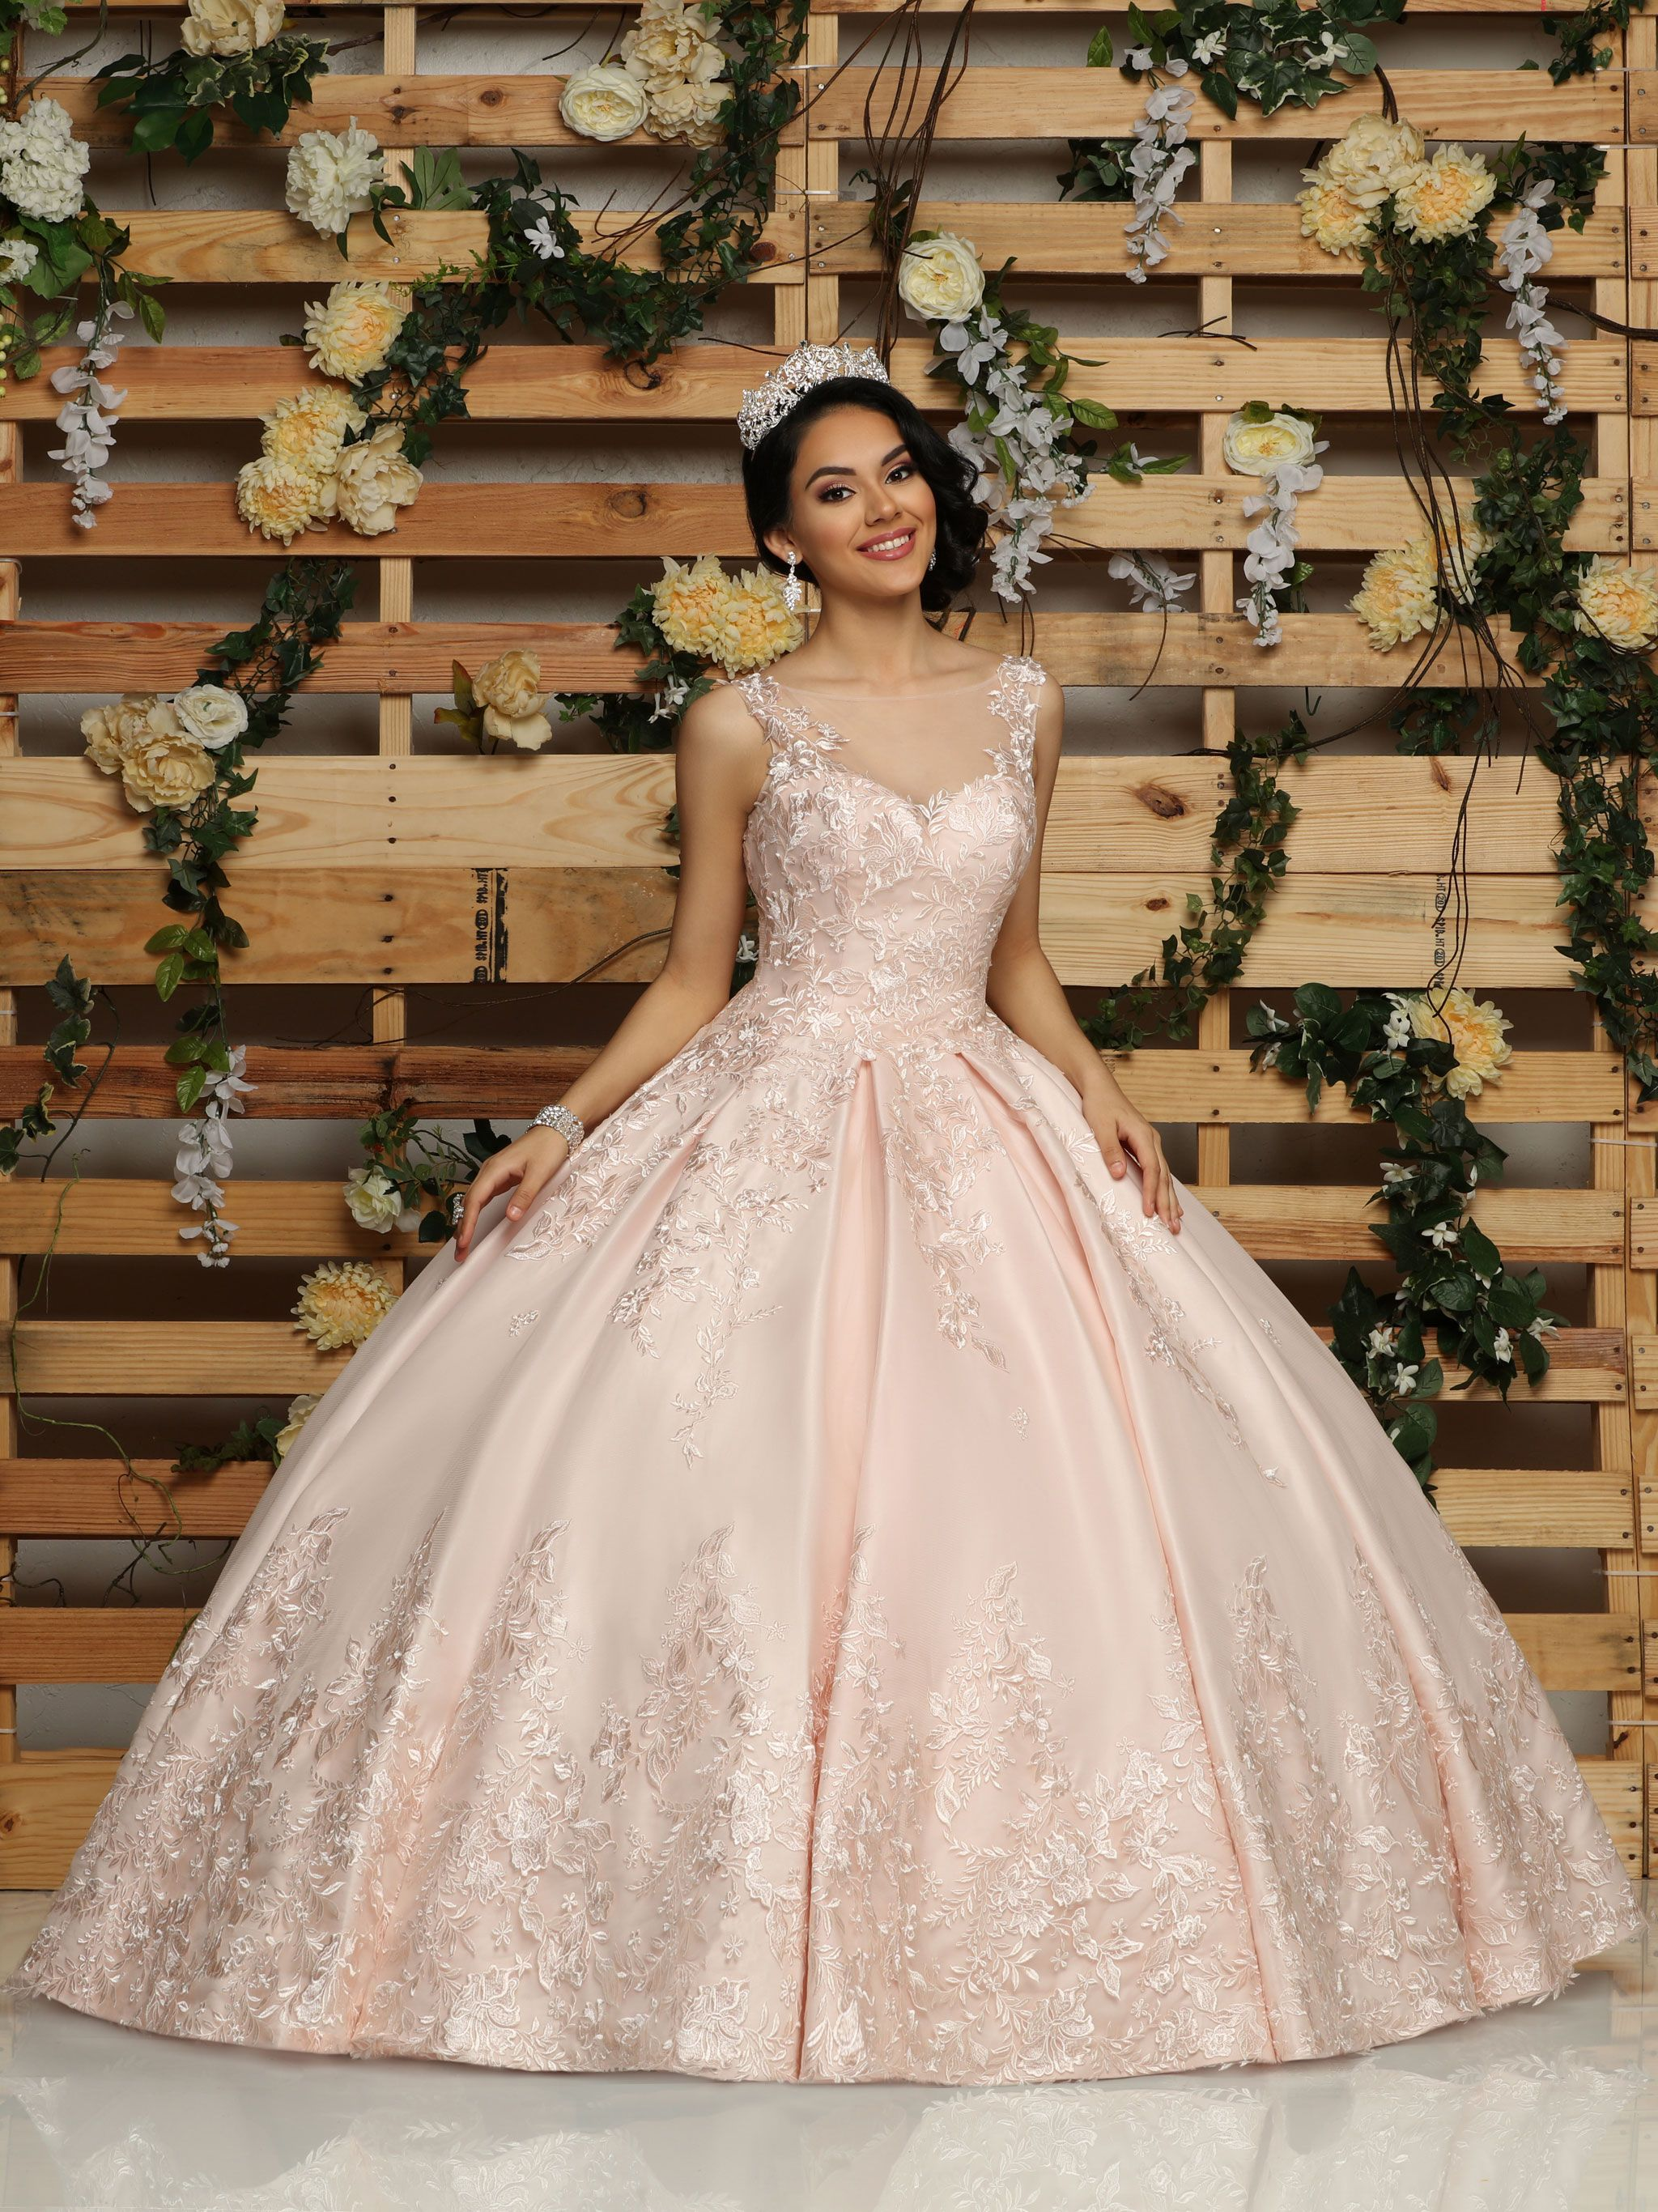 03bac4cea14 Q by DaVinci is the leading designer of Quinceanera Dresses. Browse the  hottest colors   freshest styles within our huge selection of gorgeous  quince gowns.